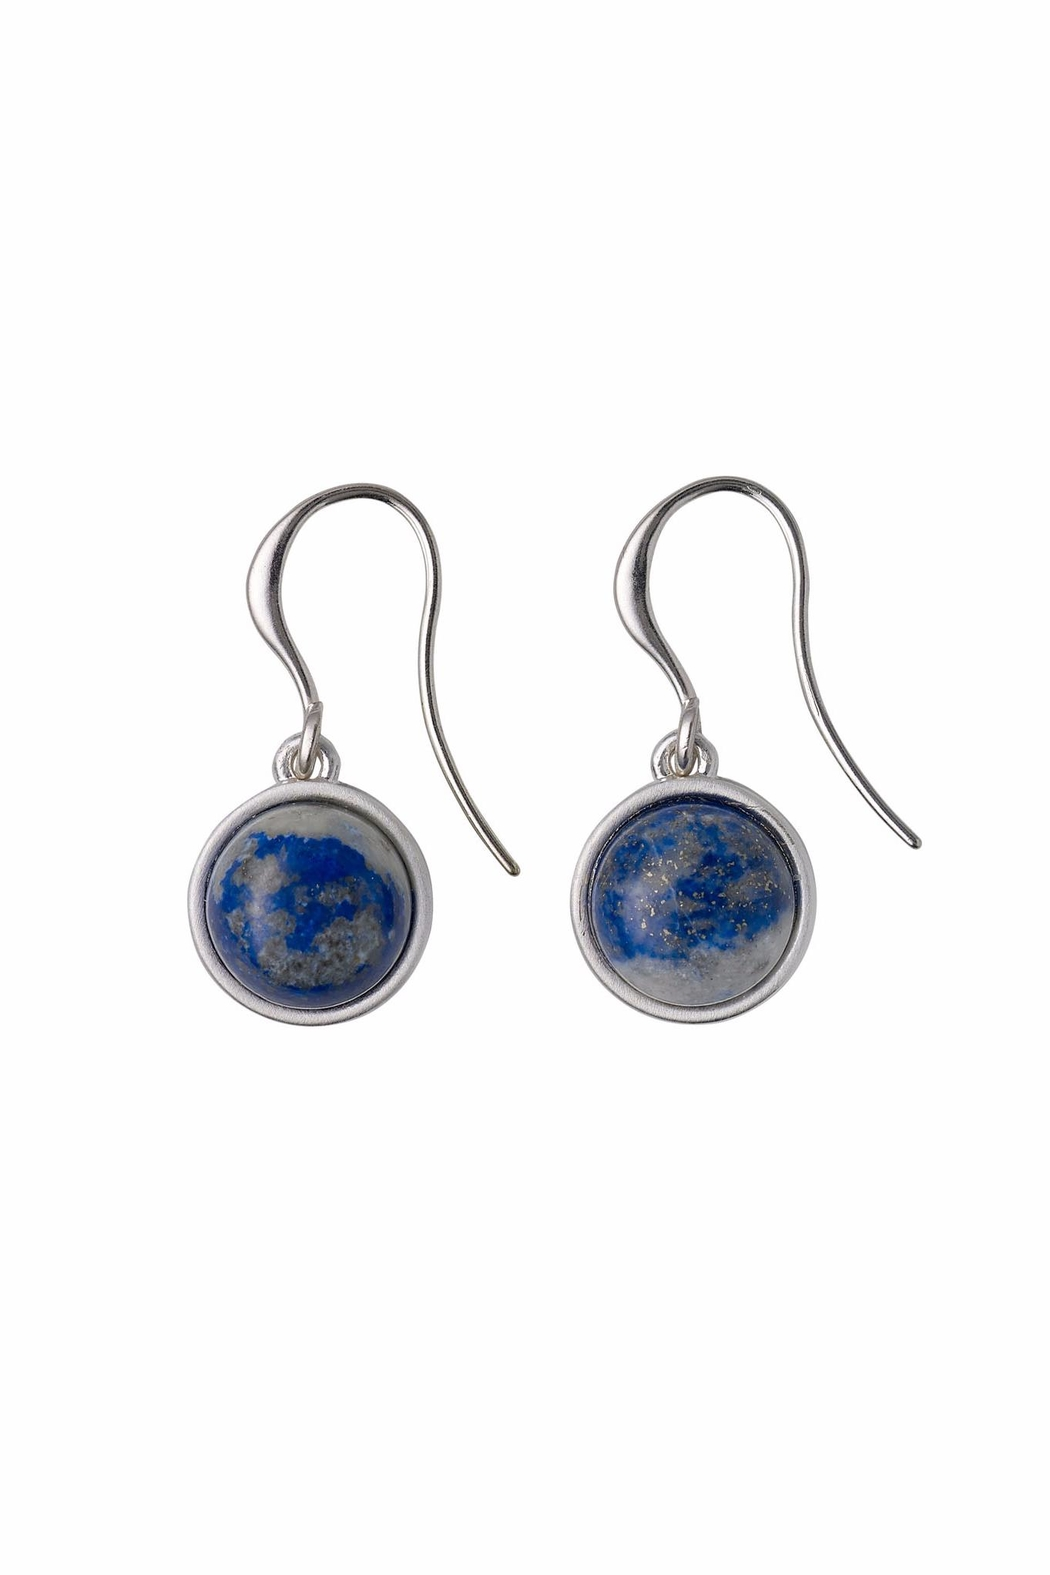 earrings yalda product store concept lapis lazuli silver